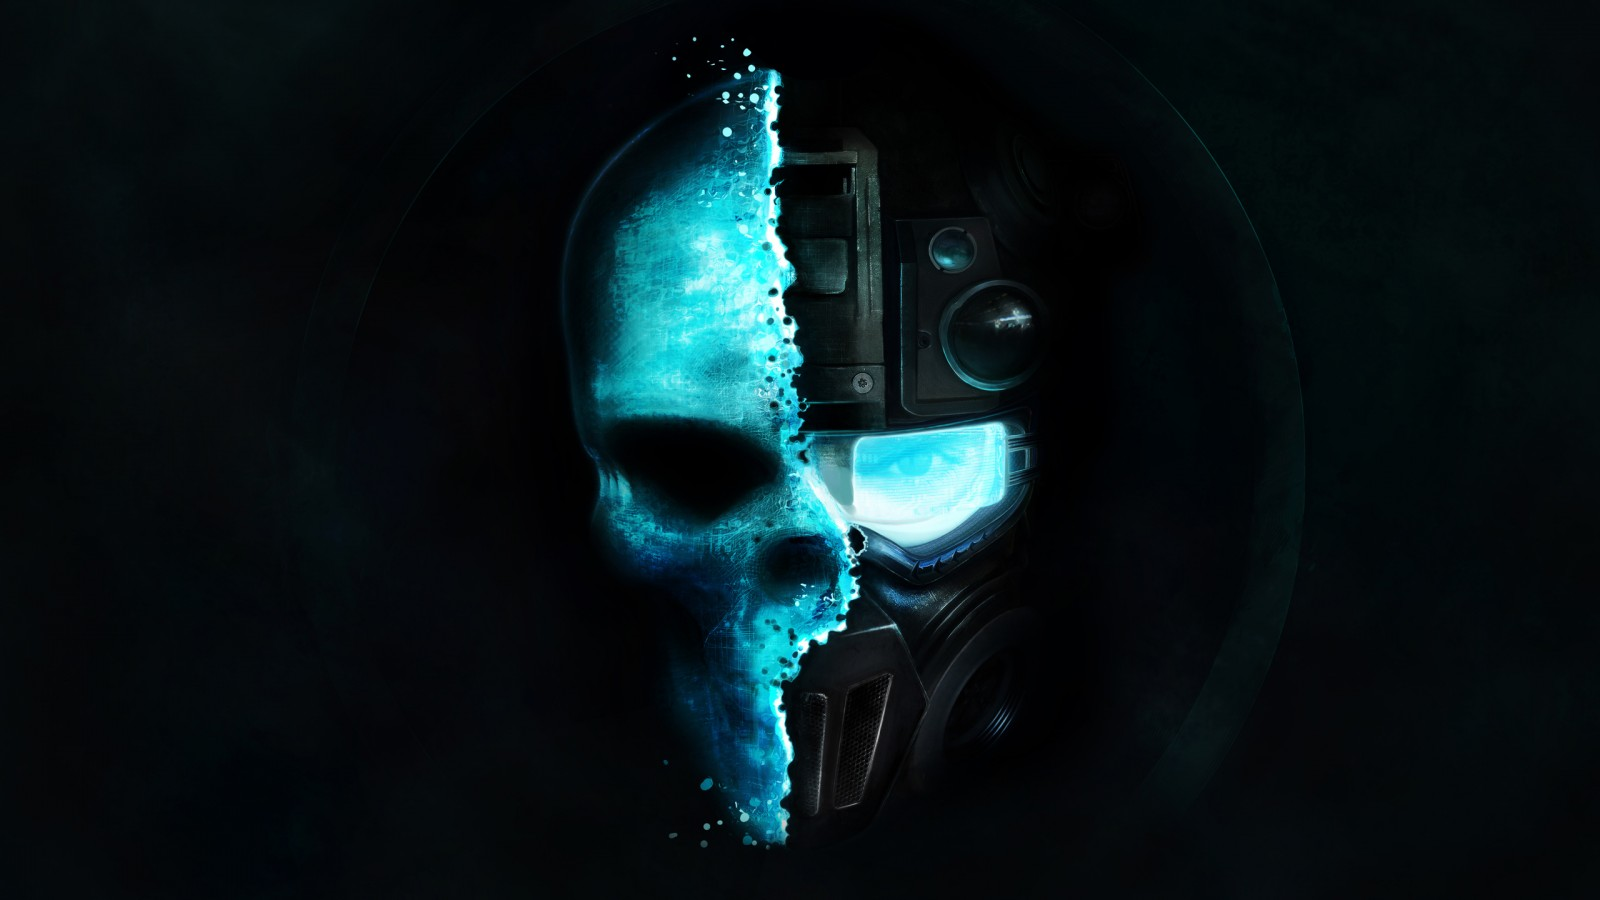 Master Yi Ghost Recon Hd Customizemyi Com 1600x900